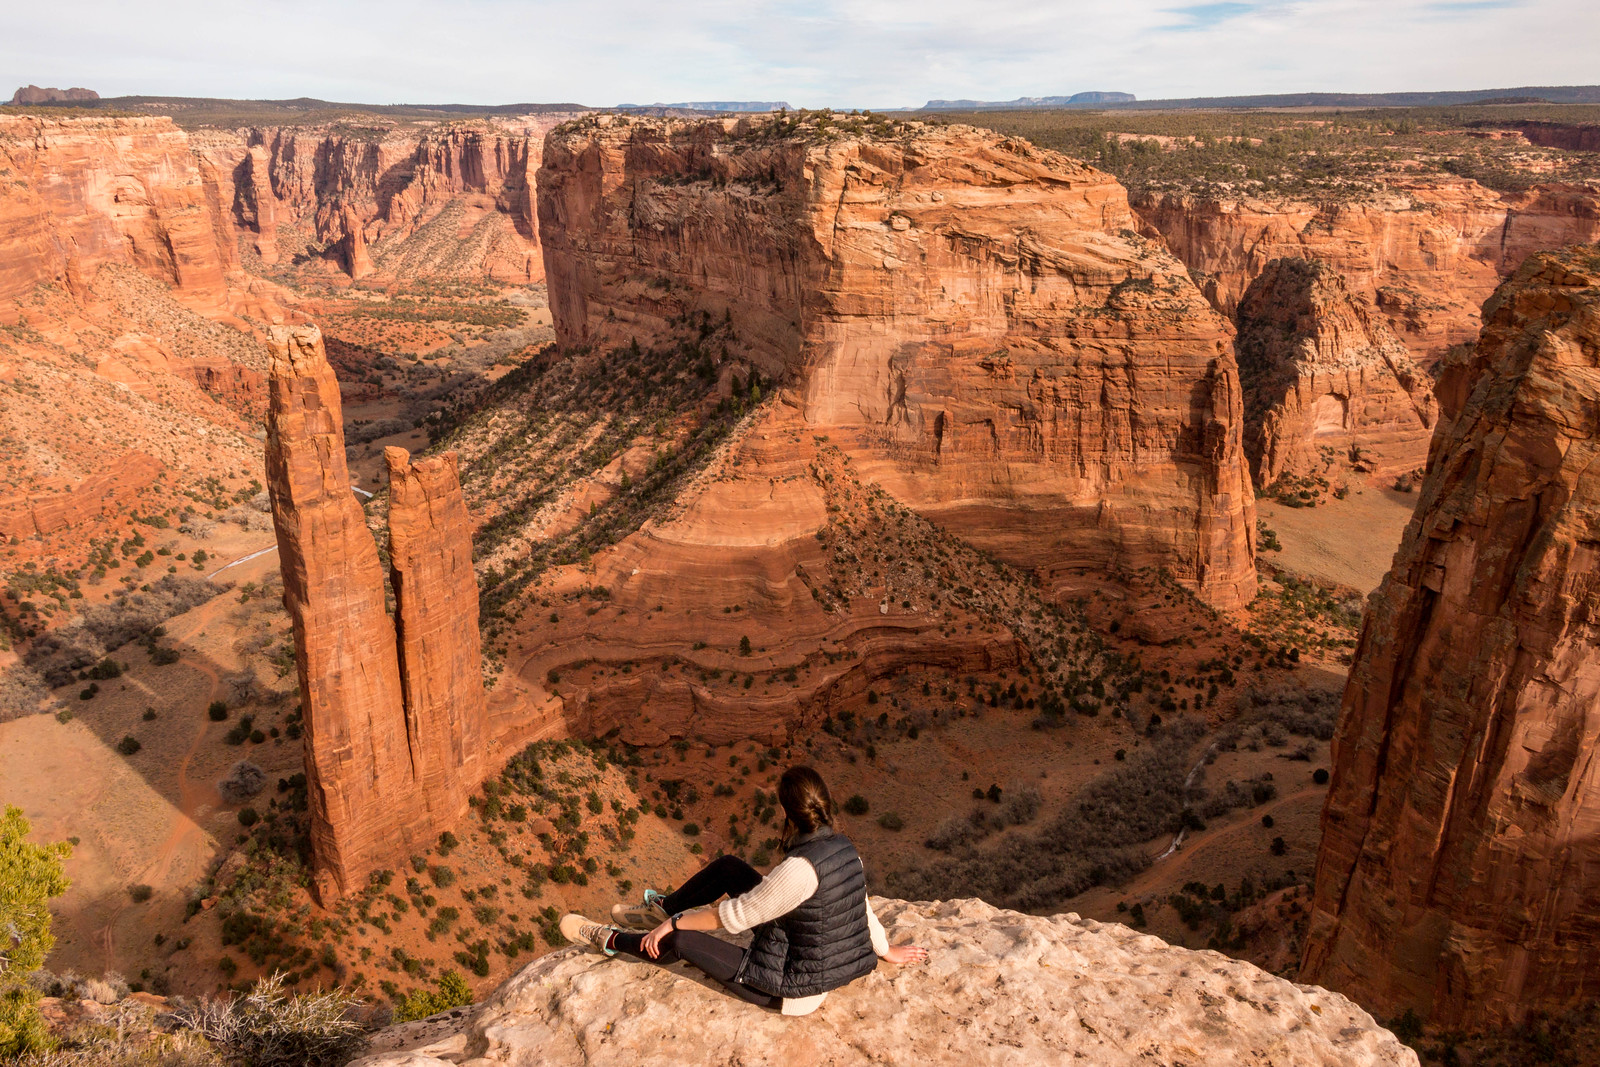 12.26. Canyon de Chelly